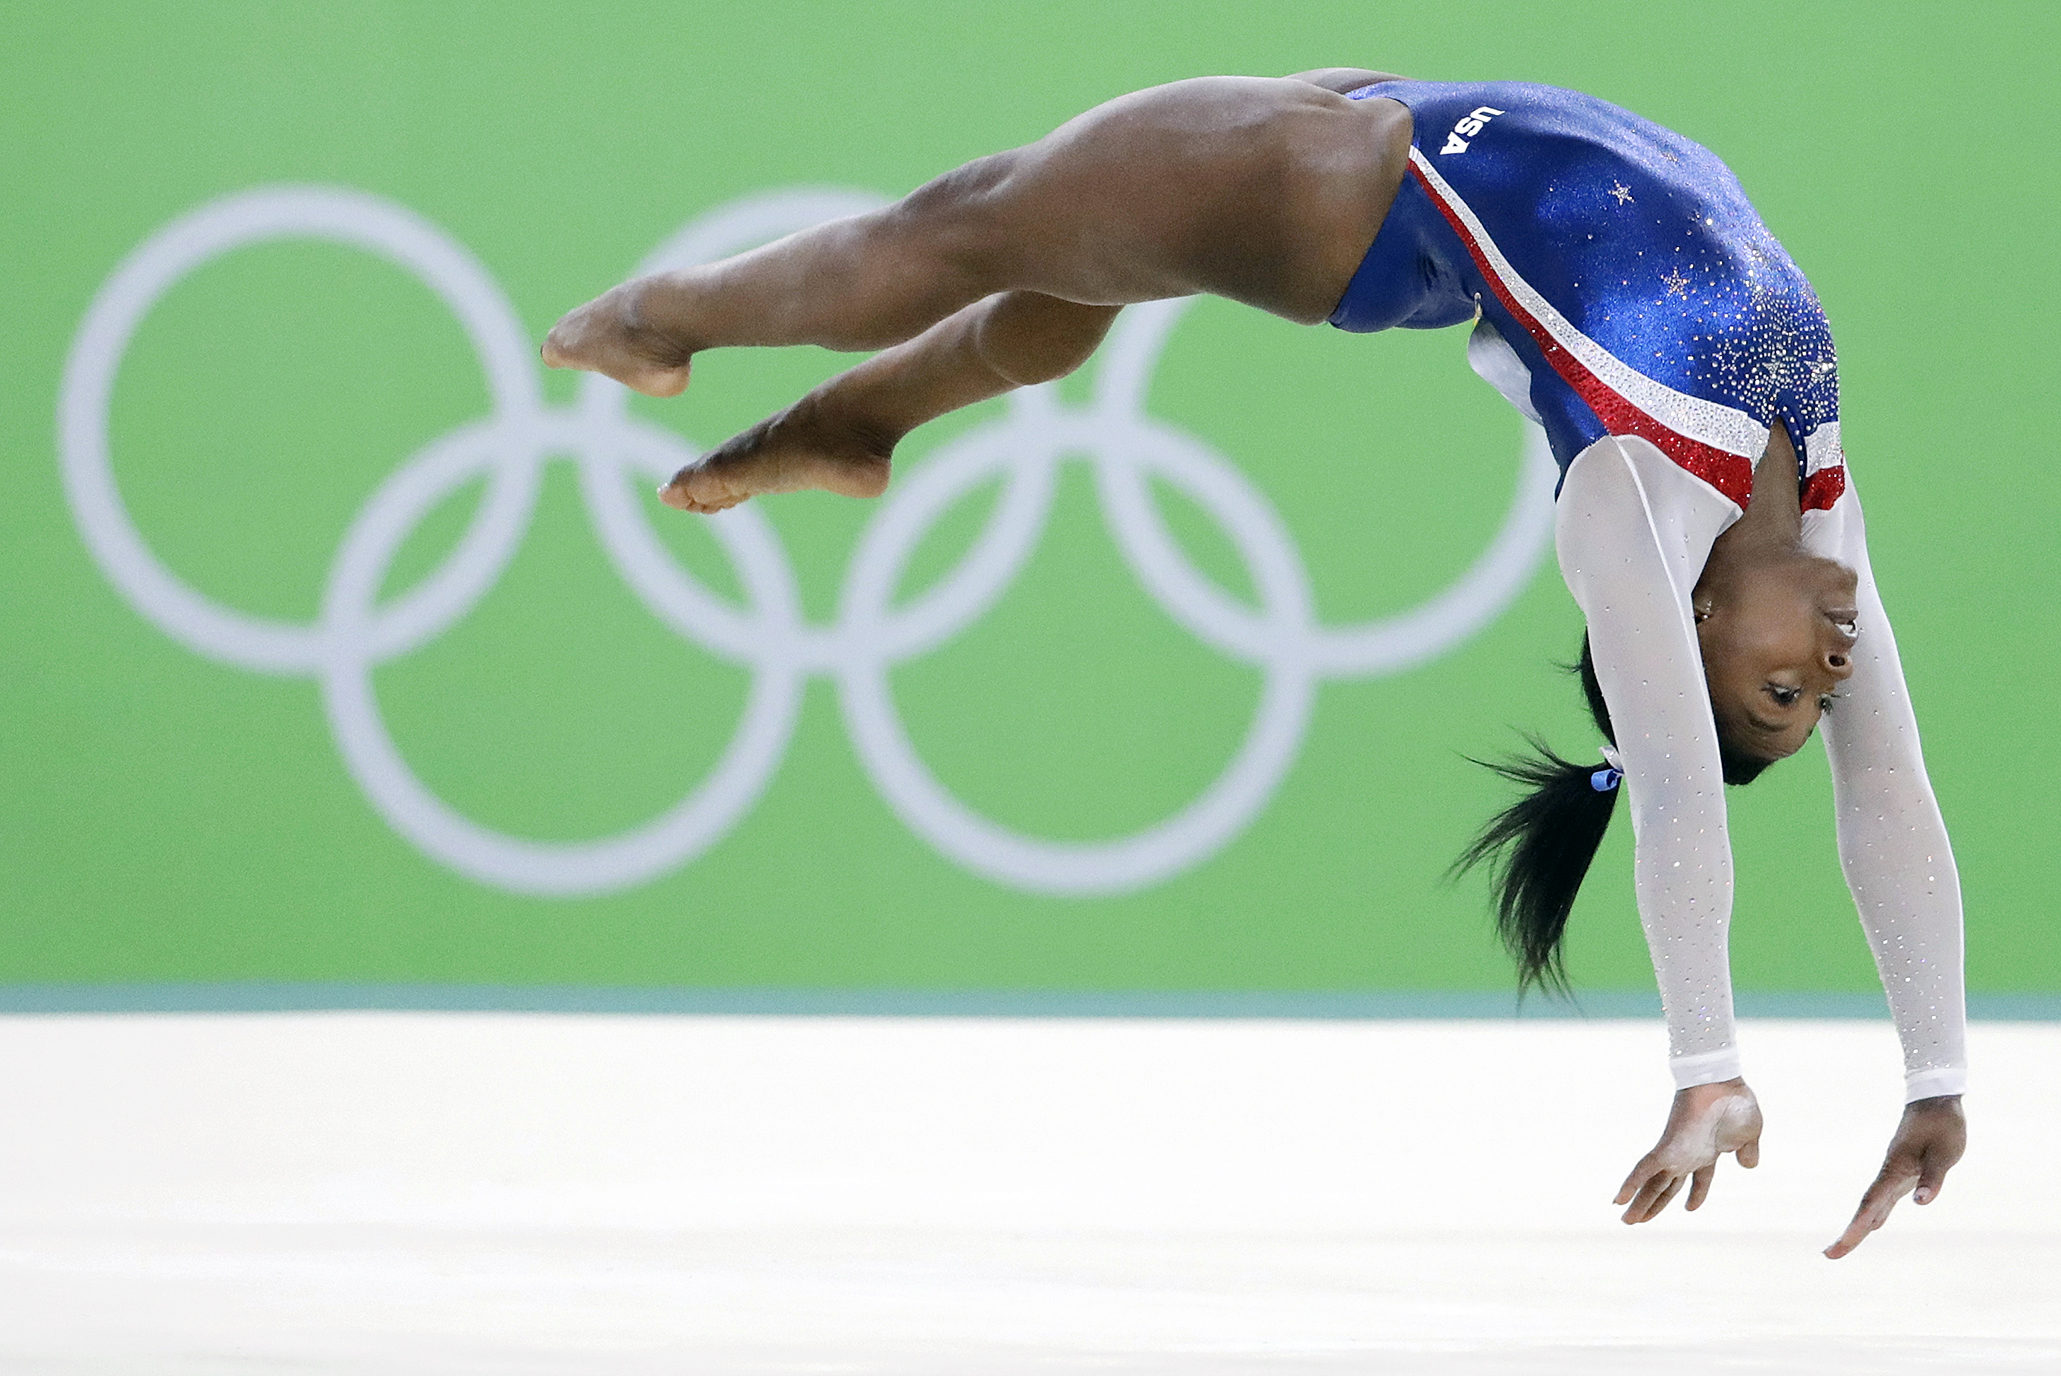 Former Gymnast Chronicles Sport Progression From Nadia Simone The Blade